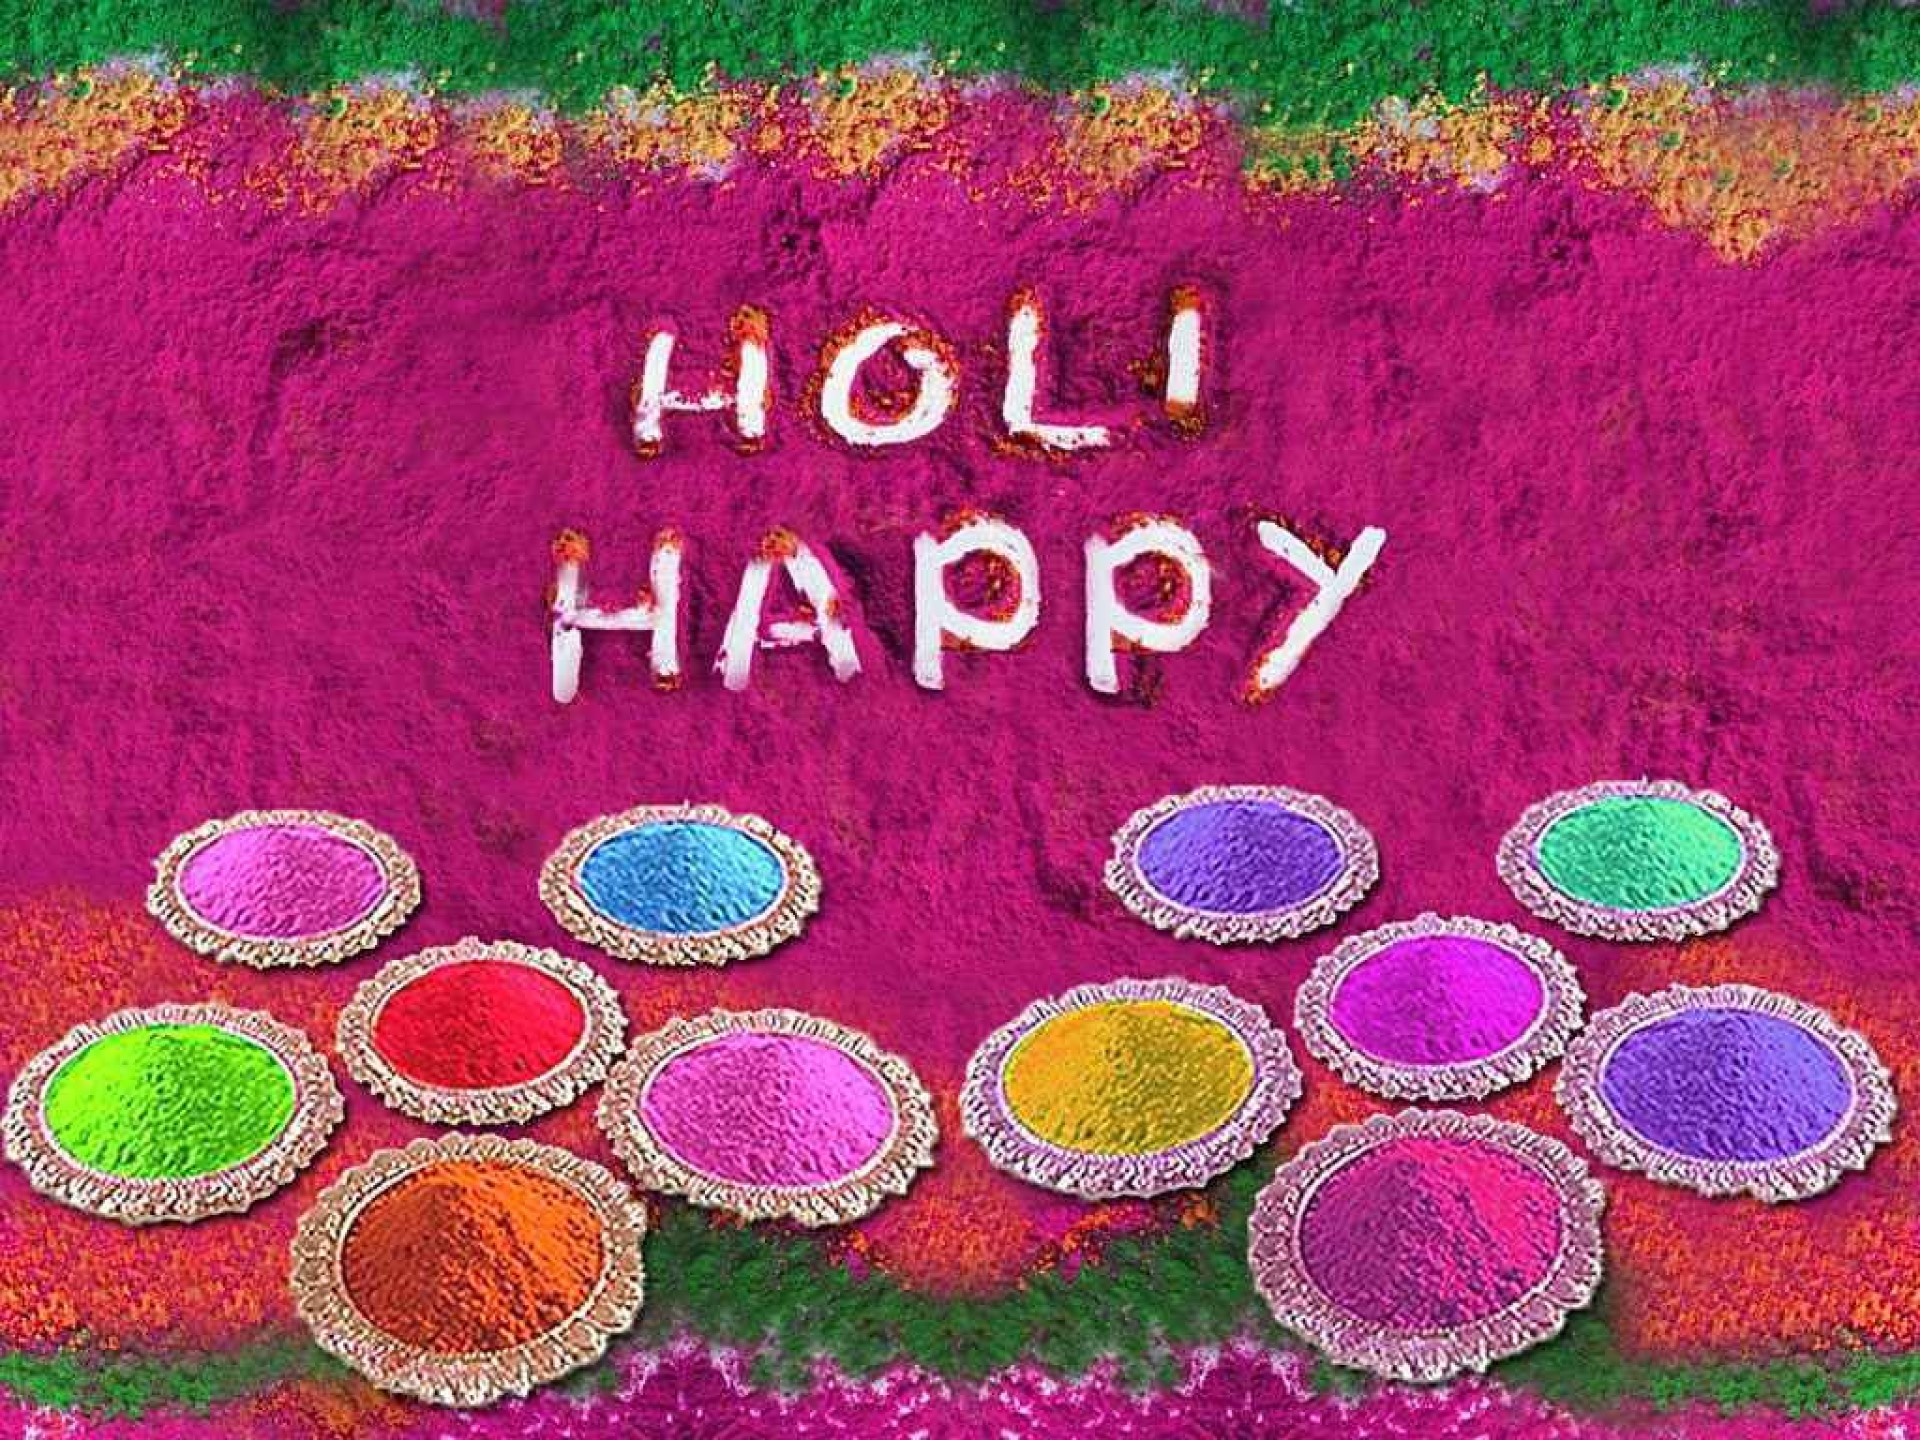 005 Holi Festival Essay Happy Wallpaper Top Of Colours In Hindi Punjabi Language For Class 2 1920